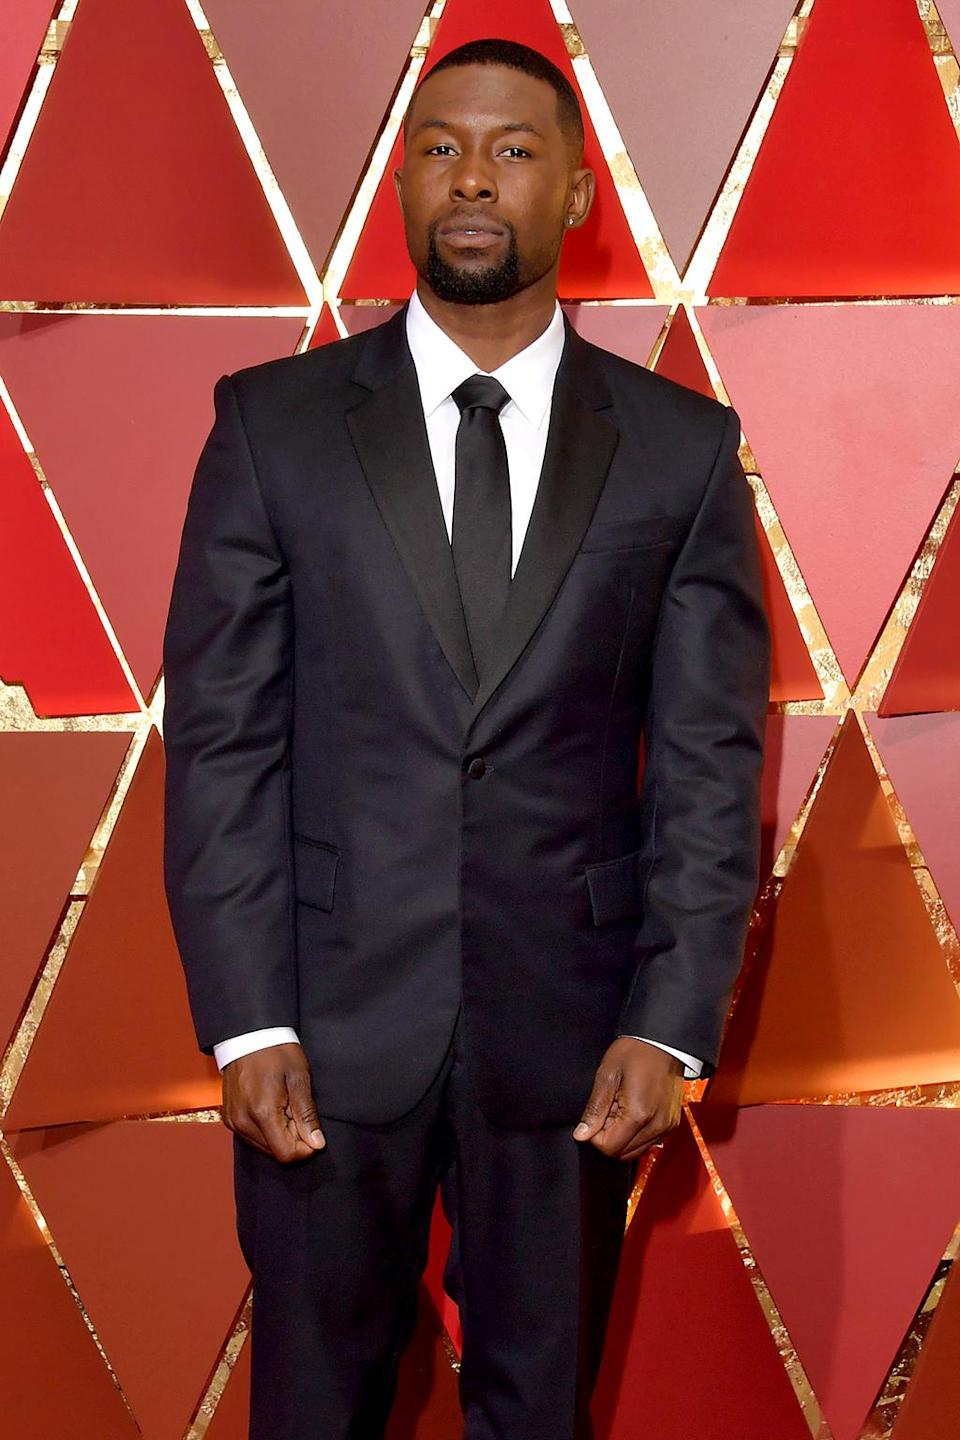 <p>Actor Trevante Rhodes attends the 89th Annual Academy Awards at Hollywood & Highland Center on February 26, 2017 in Hollywood, California. (Photo by Lester Cohen/WireImage) </p>